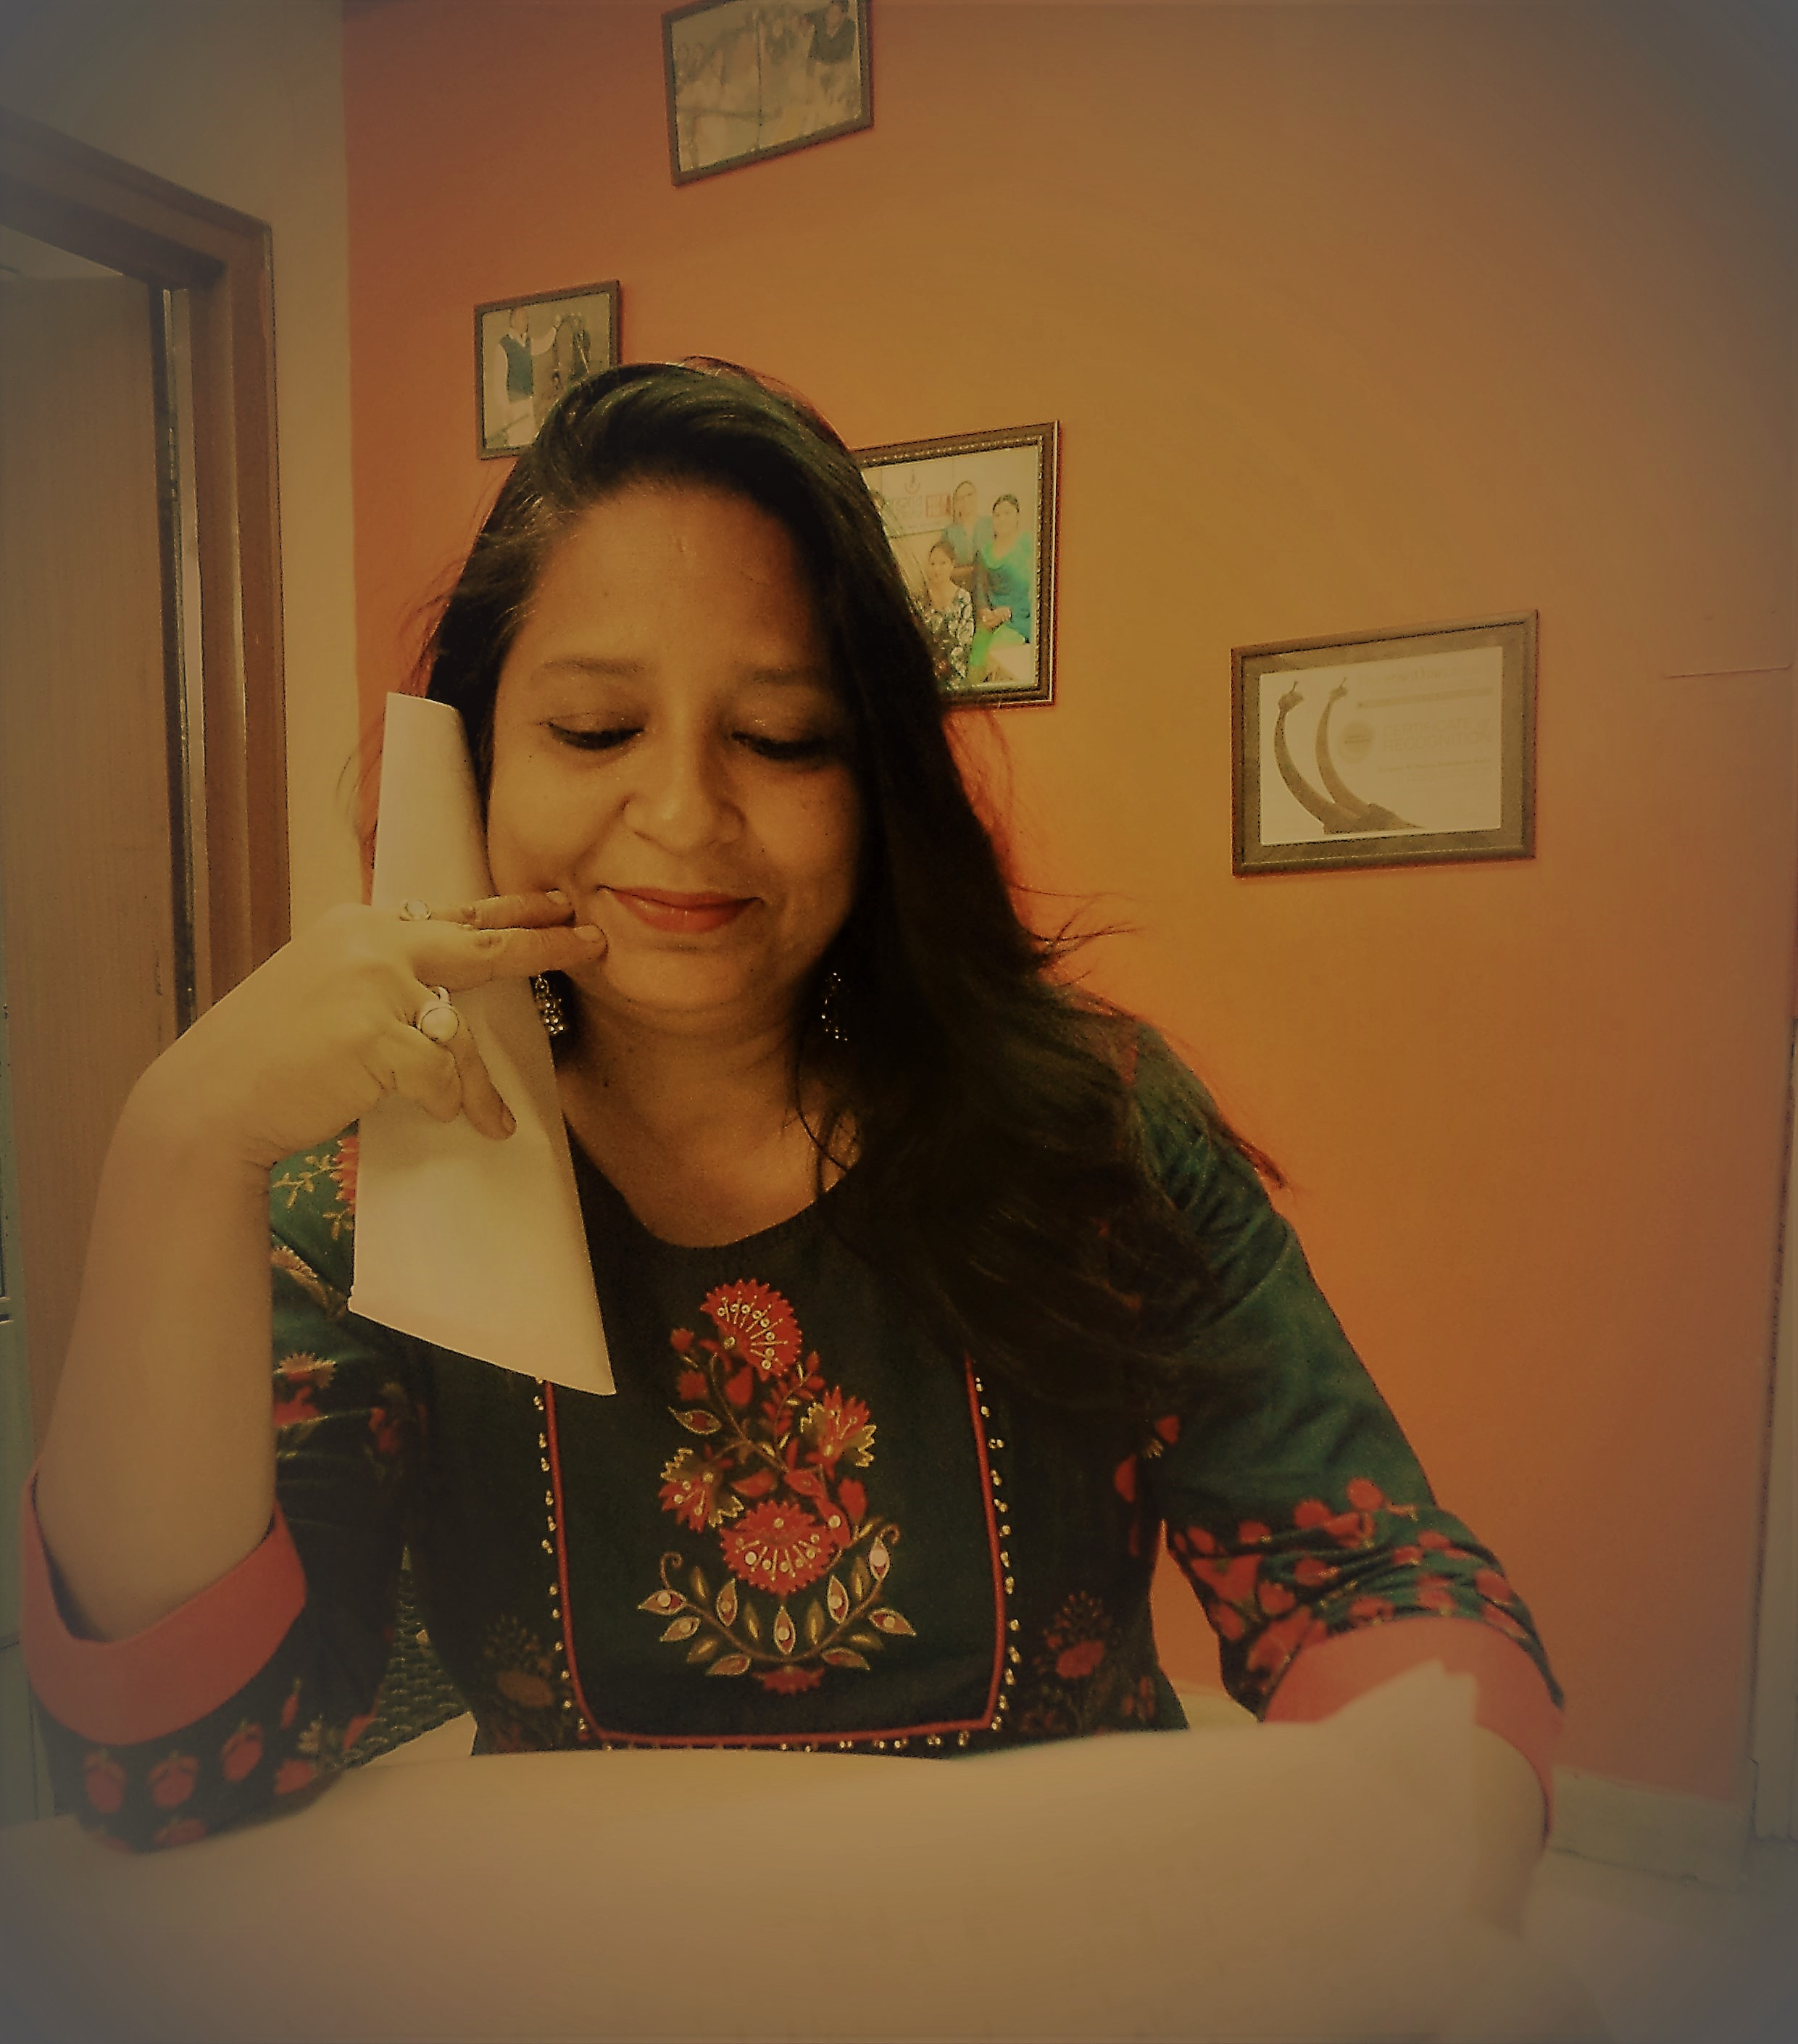 Radha goes to Jama Masjid on a Ramzaan evening, she misses her childhood freind Farzana , what does Radha write in her letter?